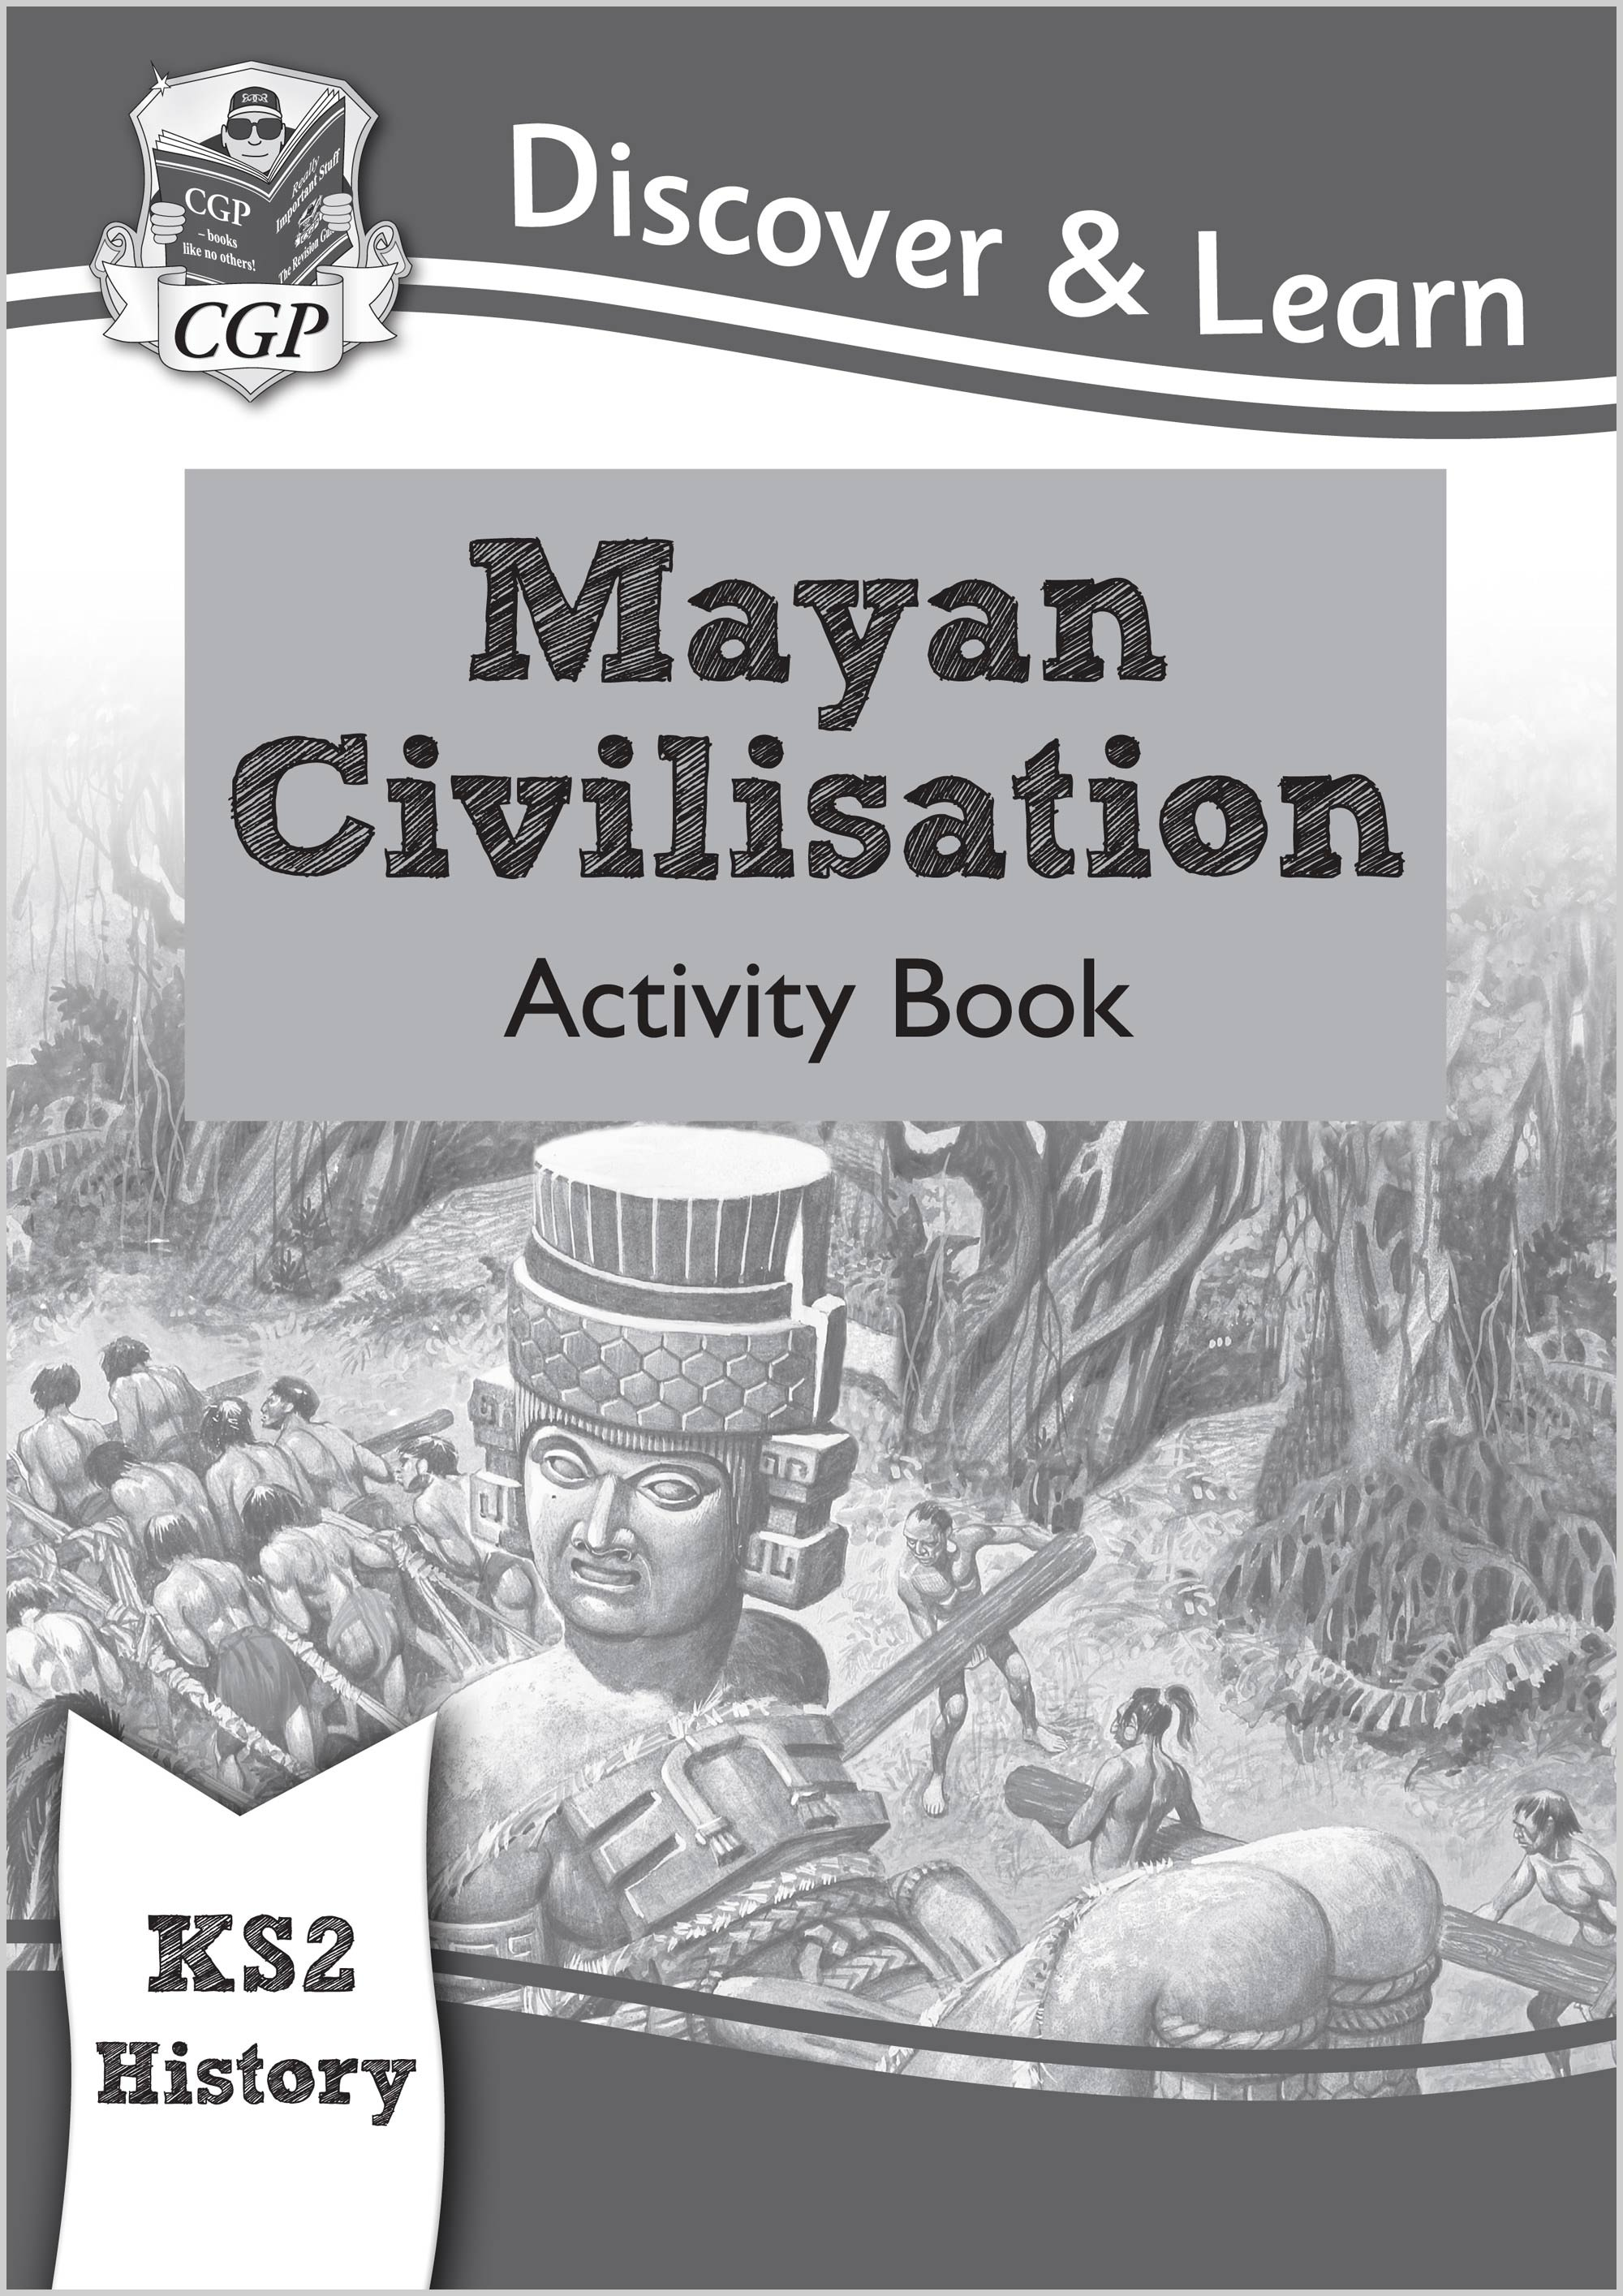 HMW21 - New KS2 Discover & Learn: History - Mayan Civilisation Activity Book